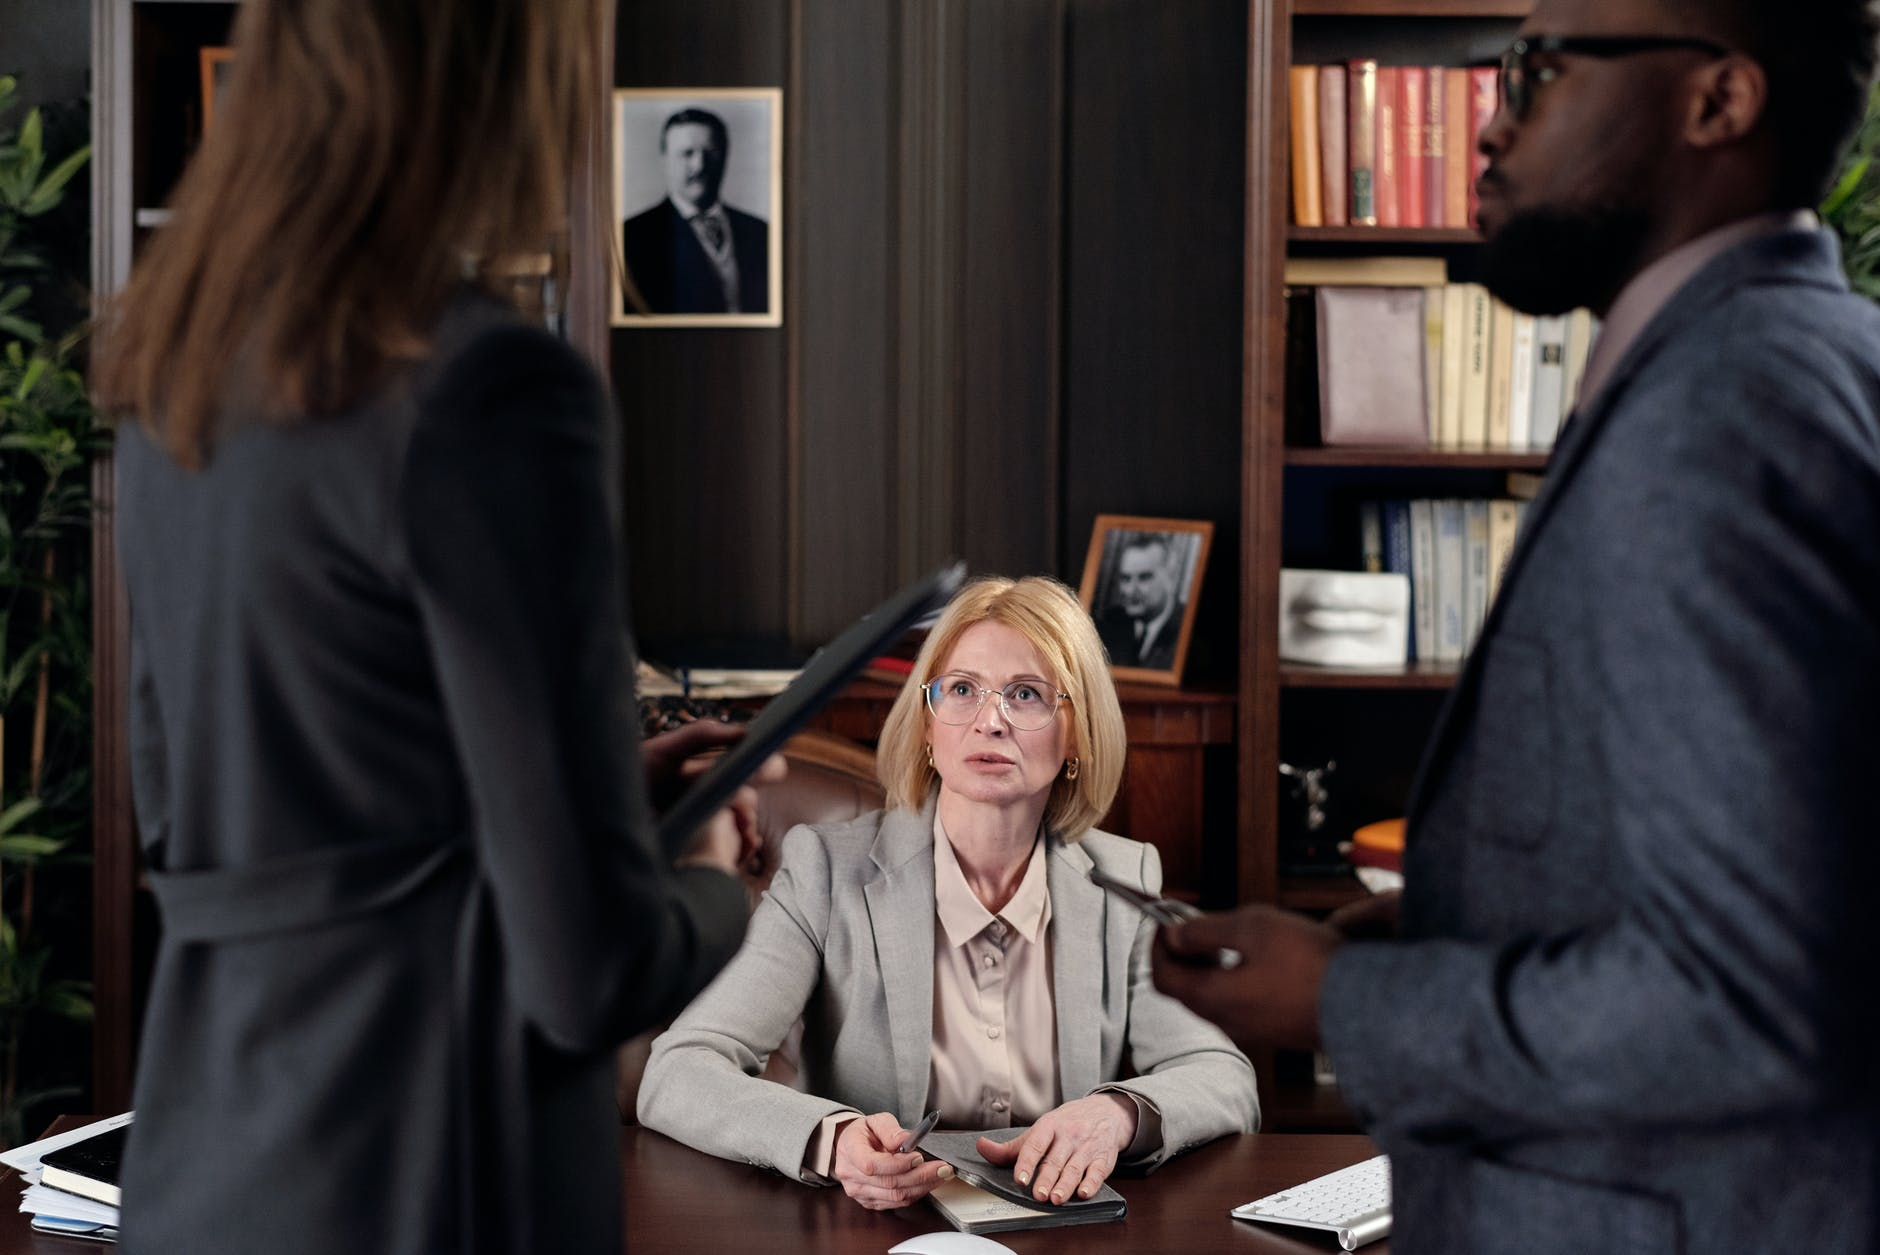 Three people having a discussion in an attorney's office